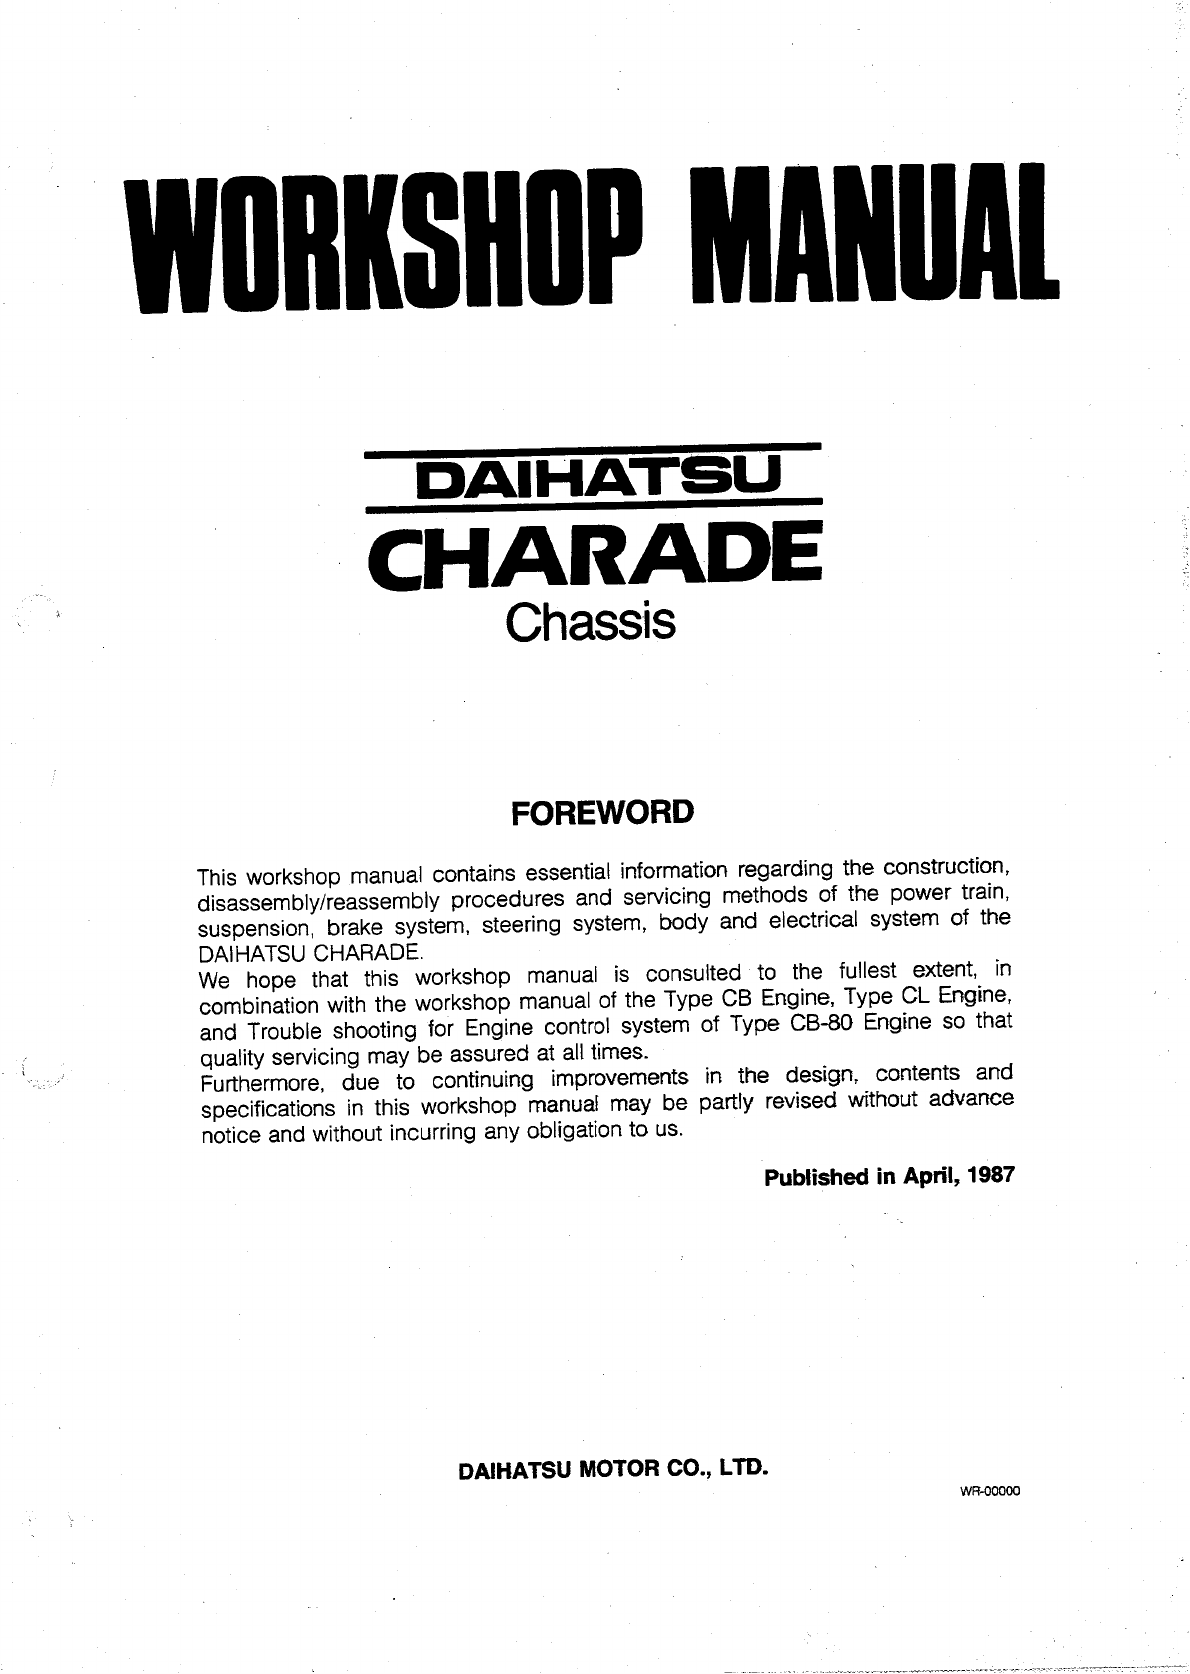 See our other Daihatsu Cuore Manuals: